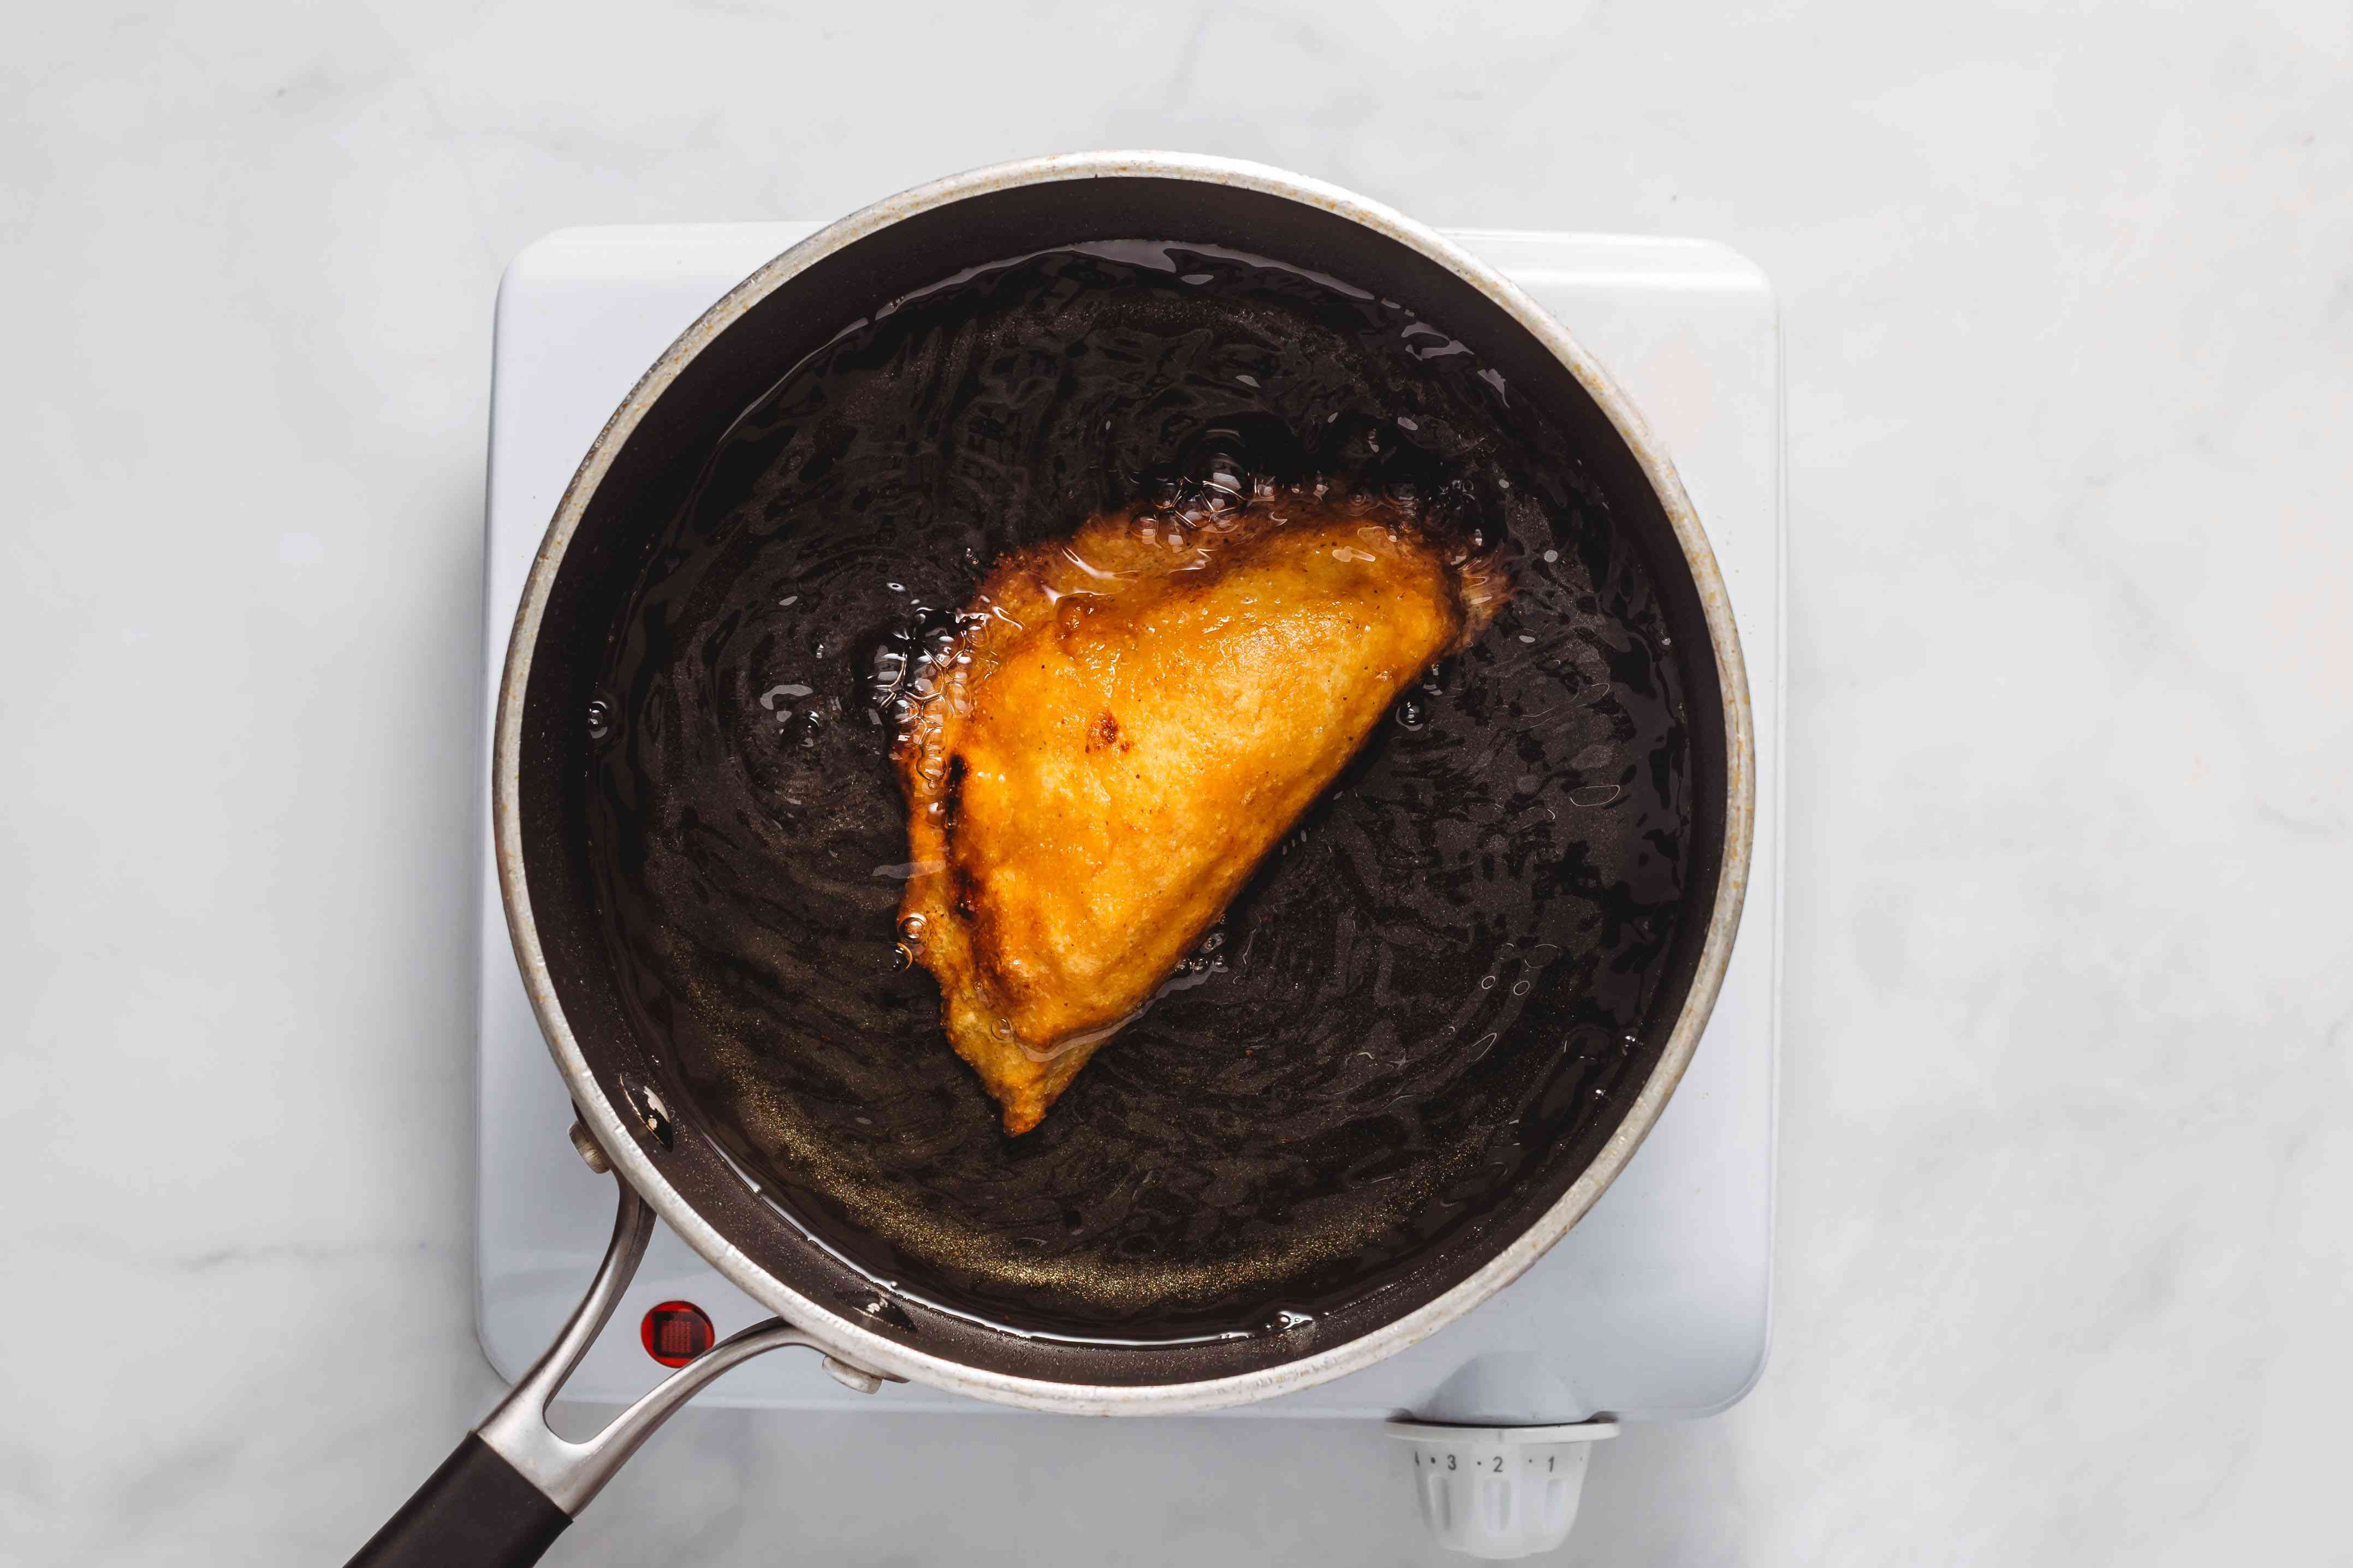 Traditional Fried Mexican Quesadillas frying in a pan with oil